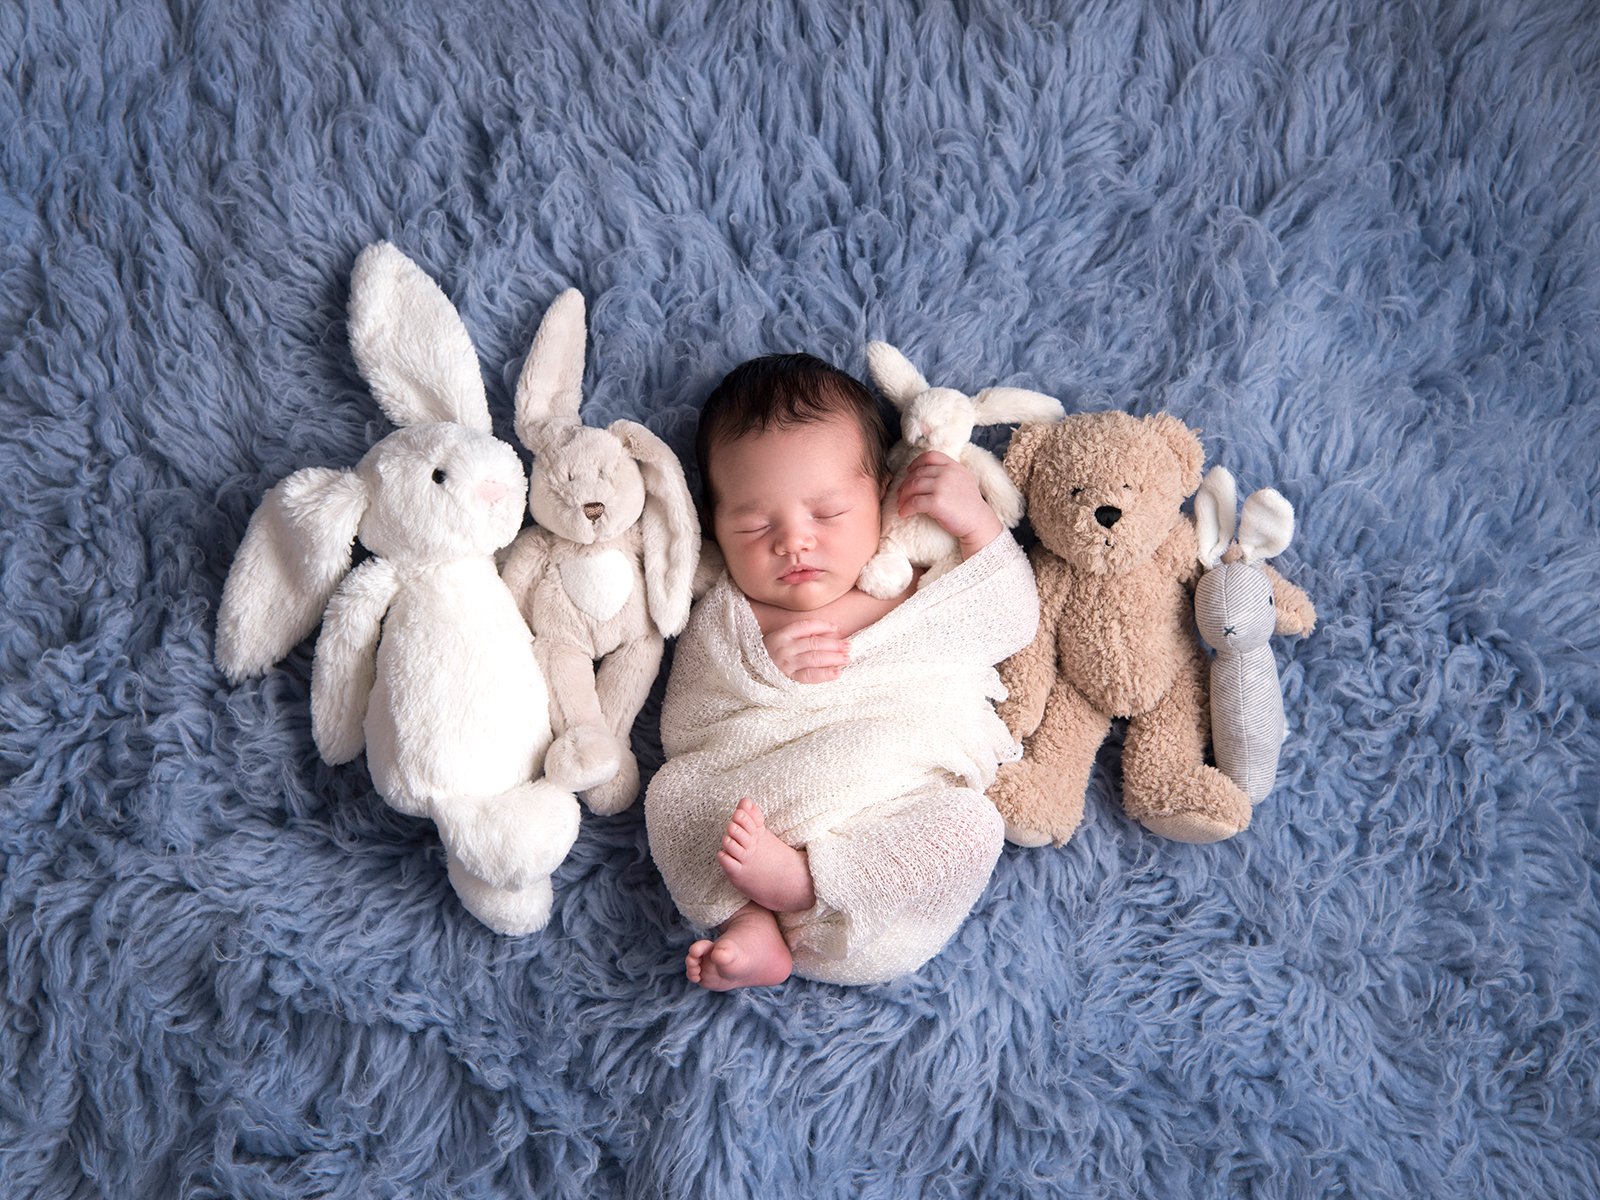 Newborn baby with toys on blue rug. Image taken by award winning newborn photographer, Nemi Miller.